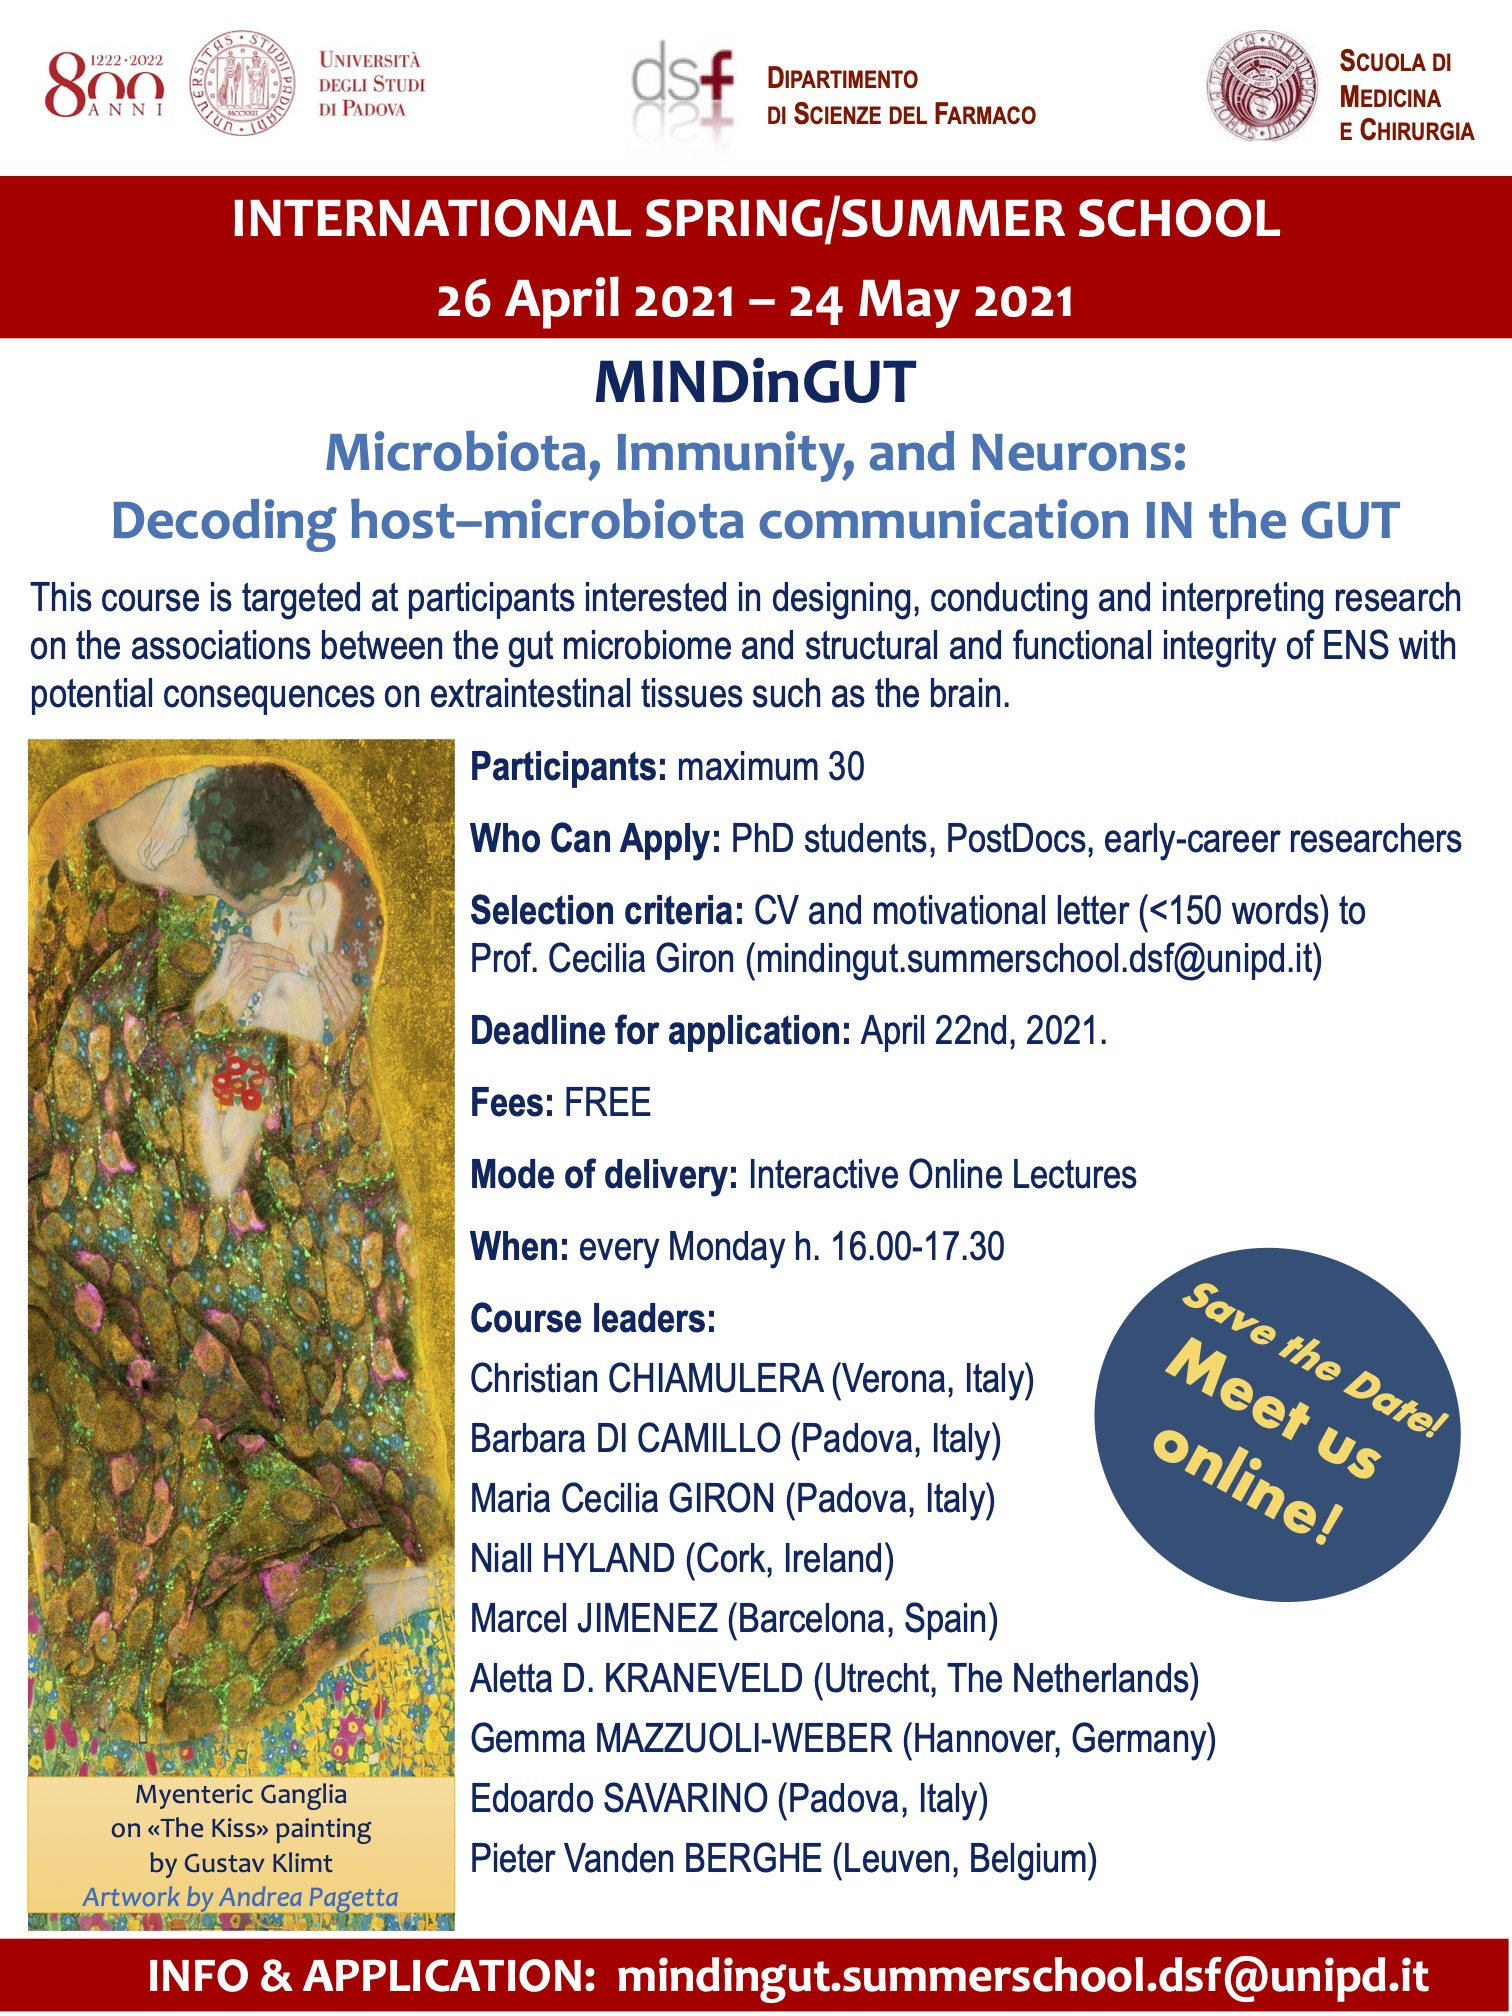 Microbiota, Immnity and Neurons: Decoding host-microbiota communication IN the GUT